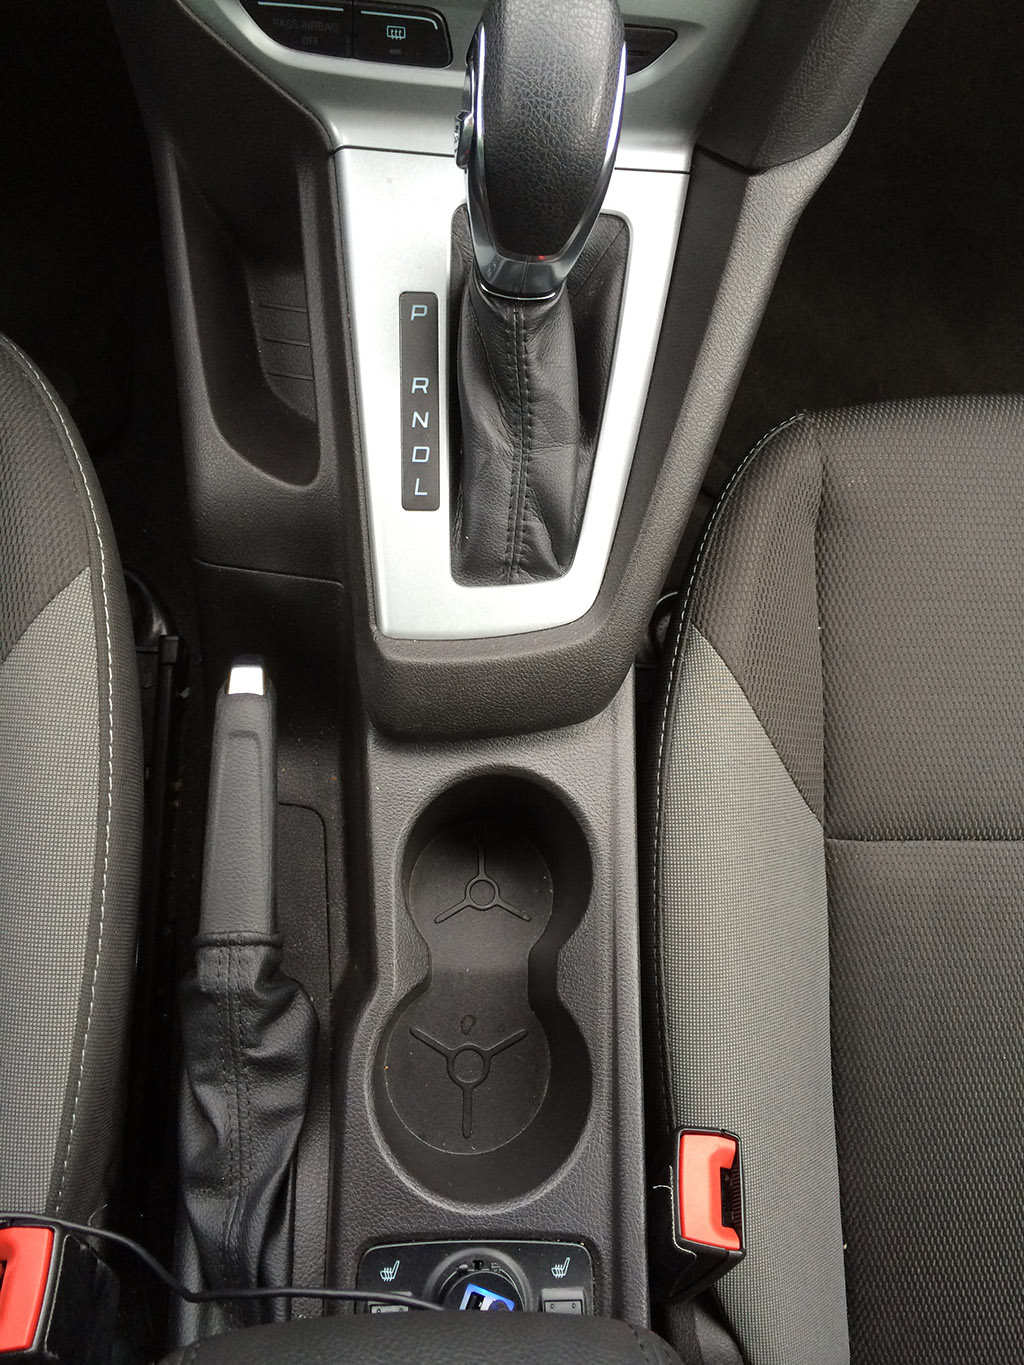 2013 ford focus cup holders